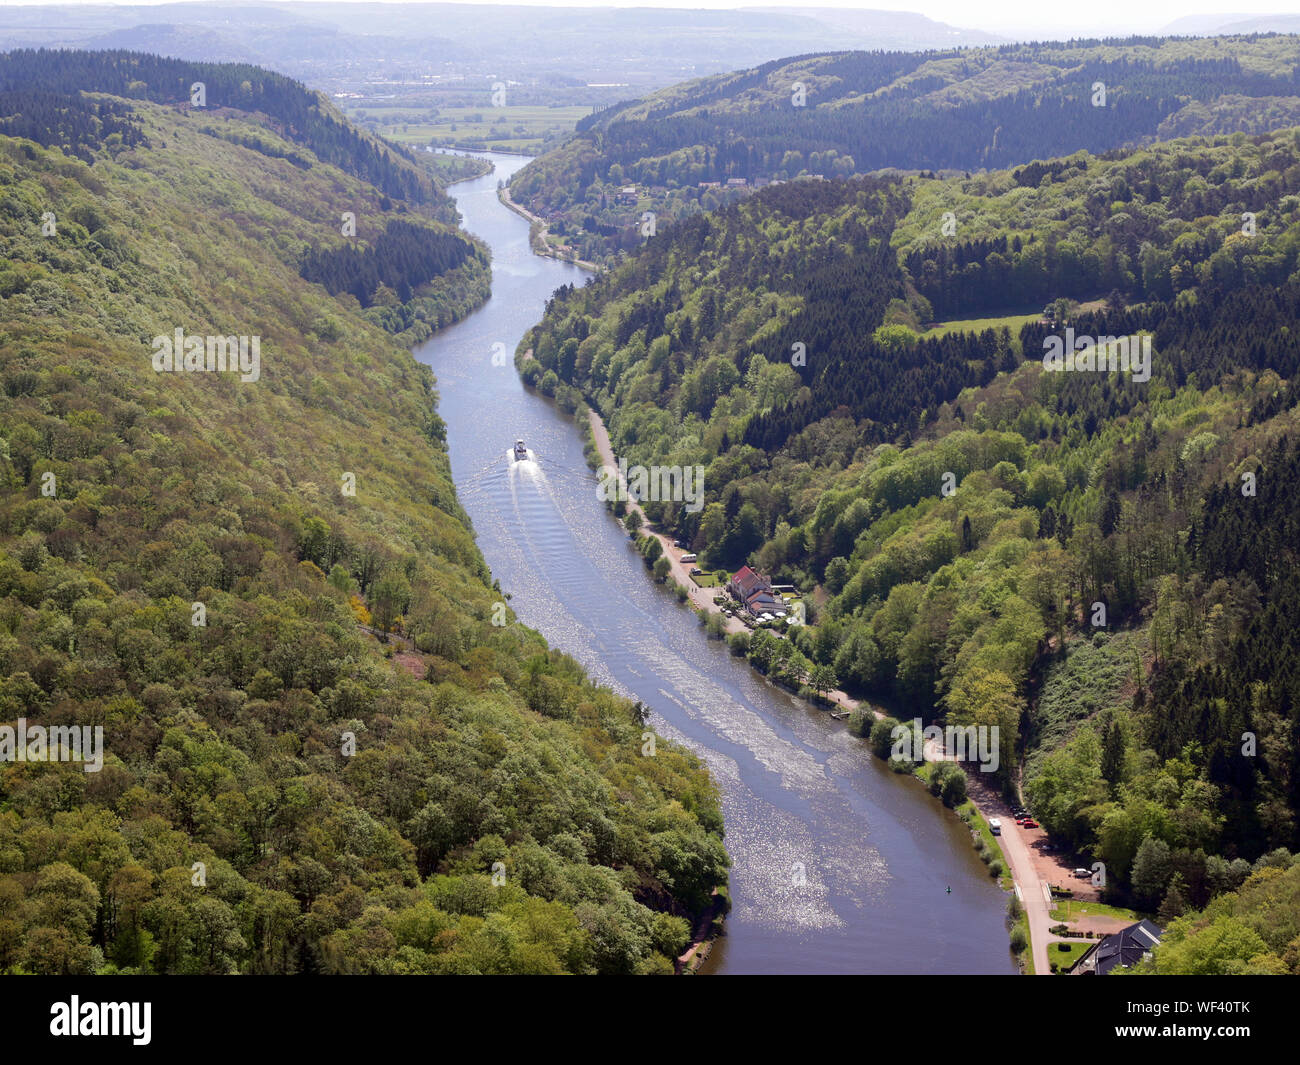 High Angle View Of River Amidst Mountains Against Sky Stock Photo